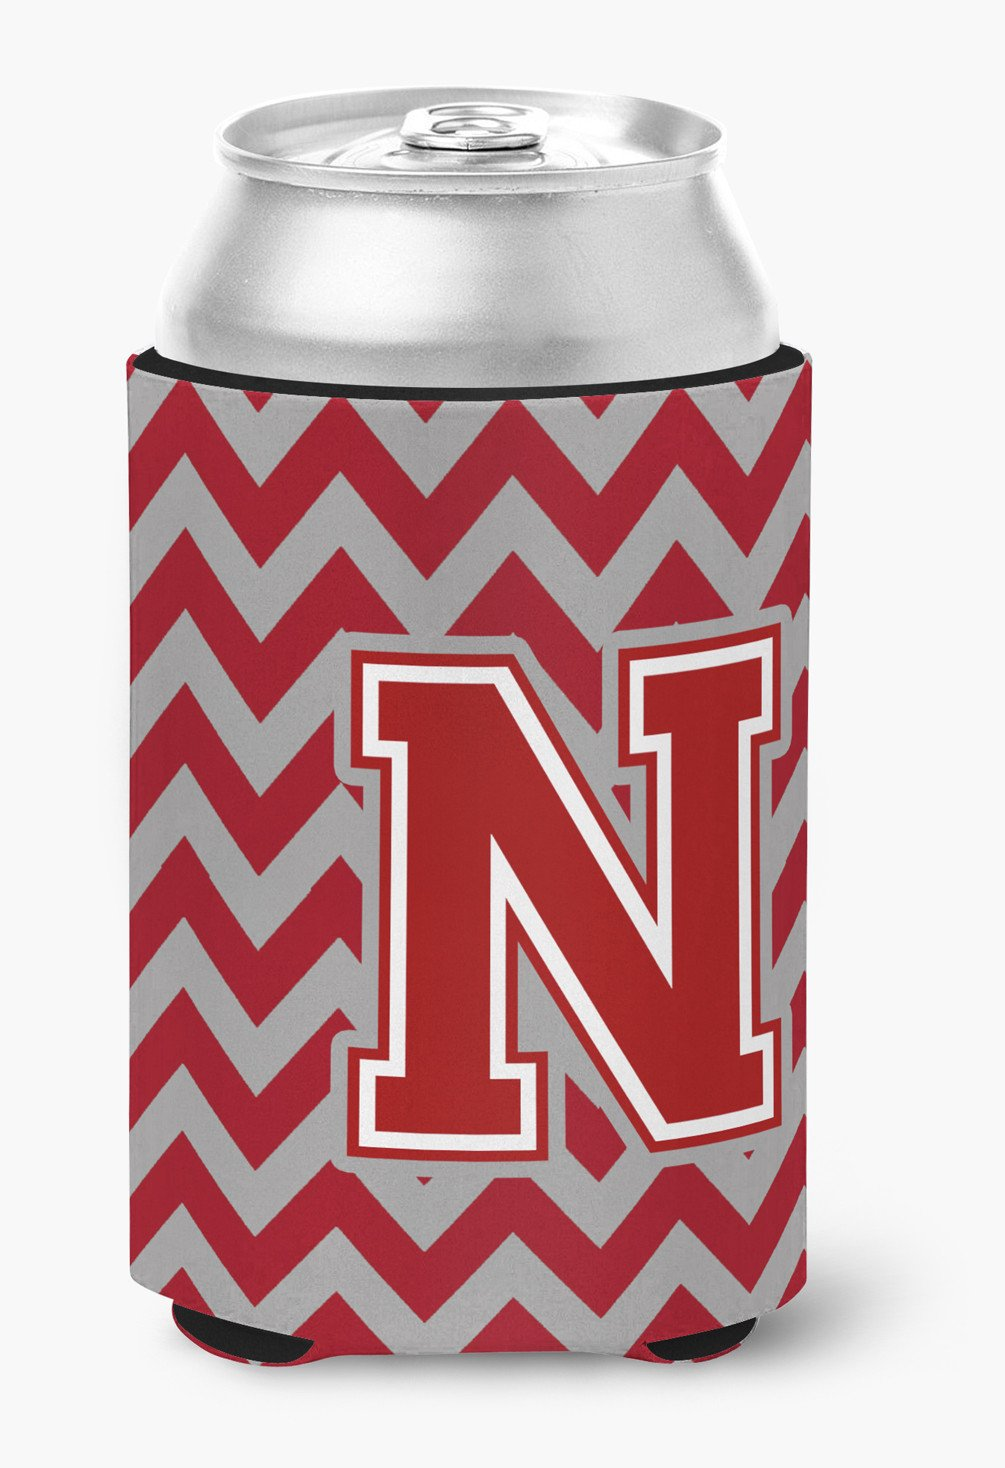 Letter N Chevron Maroon and White Can or Bottle Hugger CJ1049-NCC by Caroline's Treasures